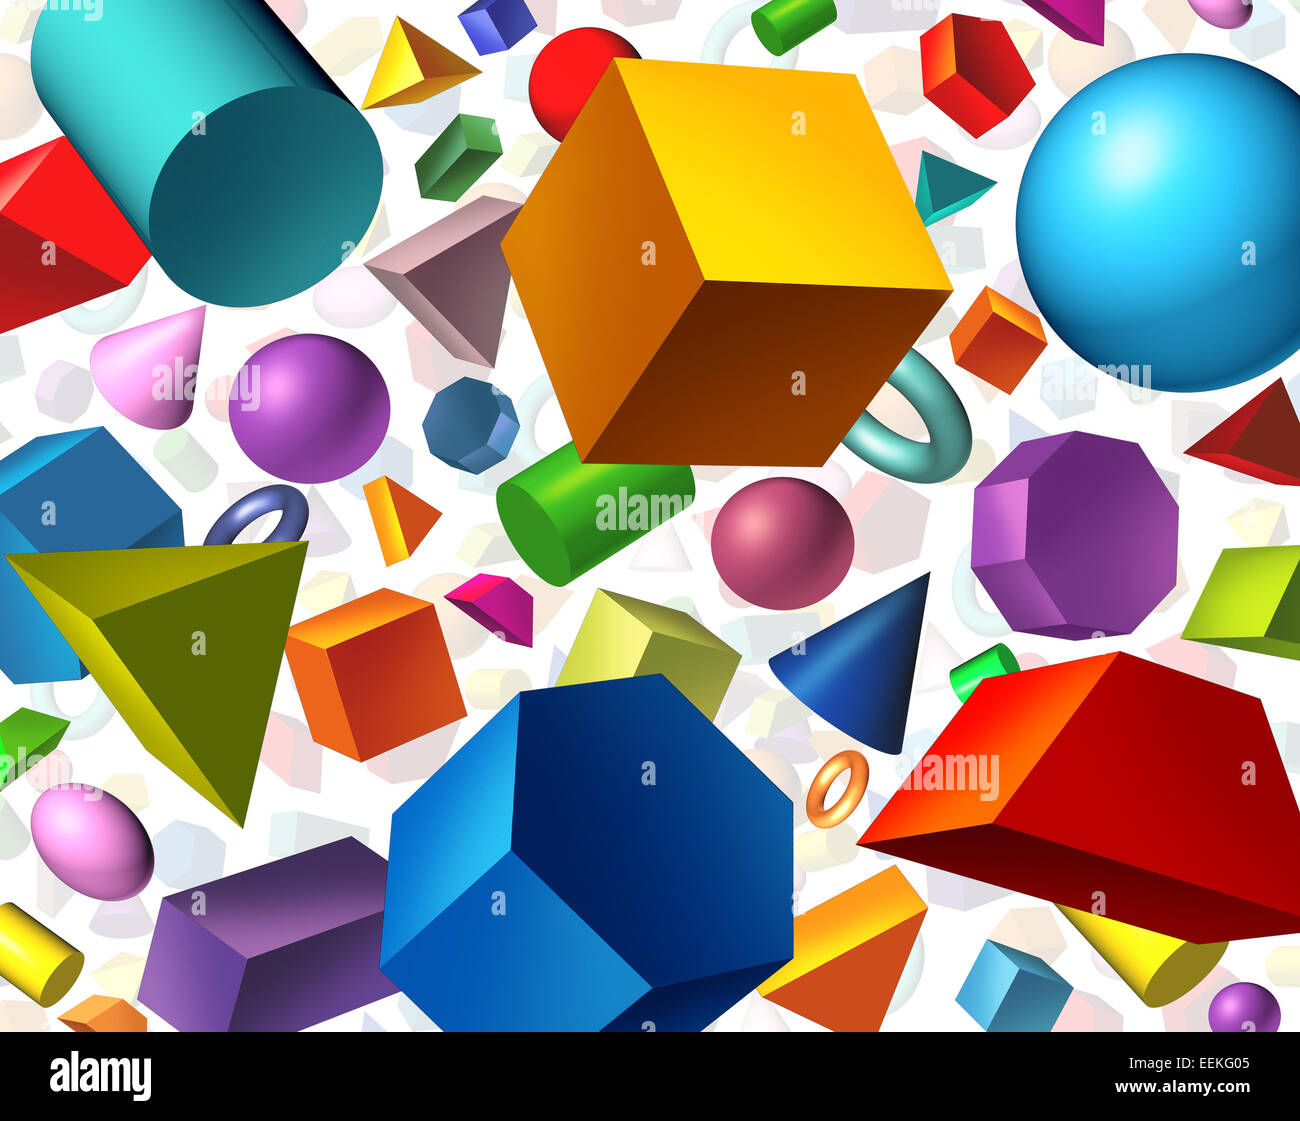 Geometric Shapes Background And Geometry Concept As Basic